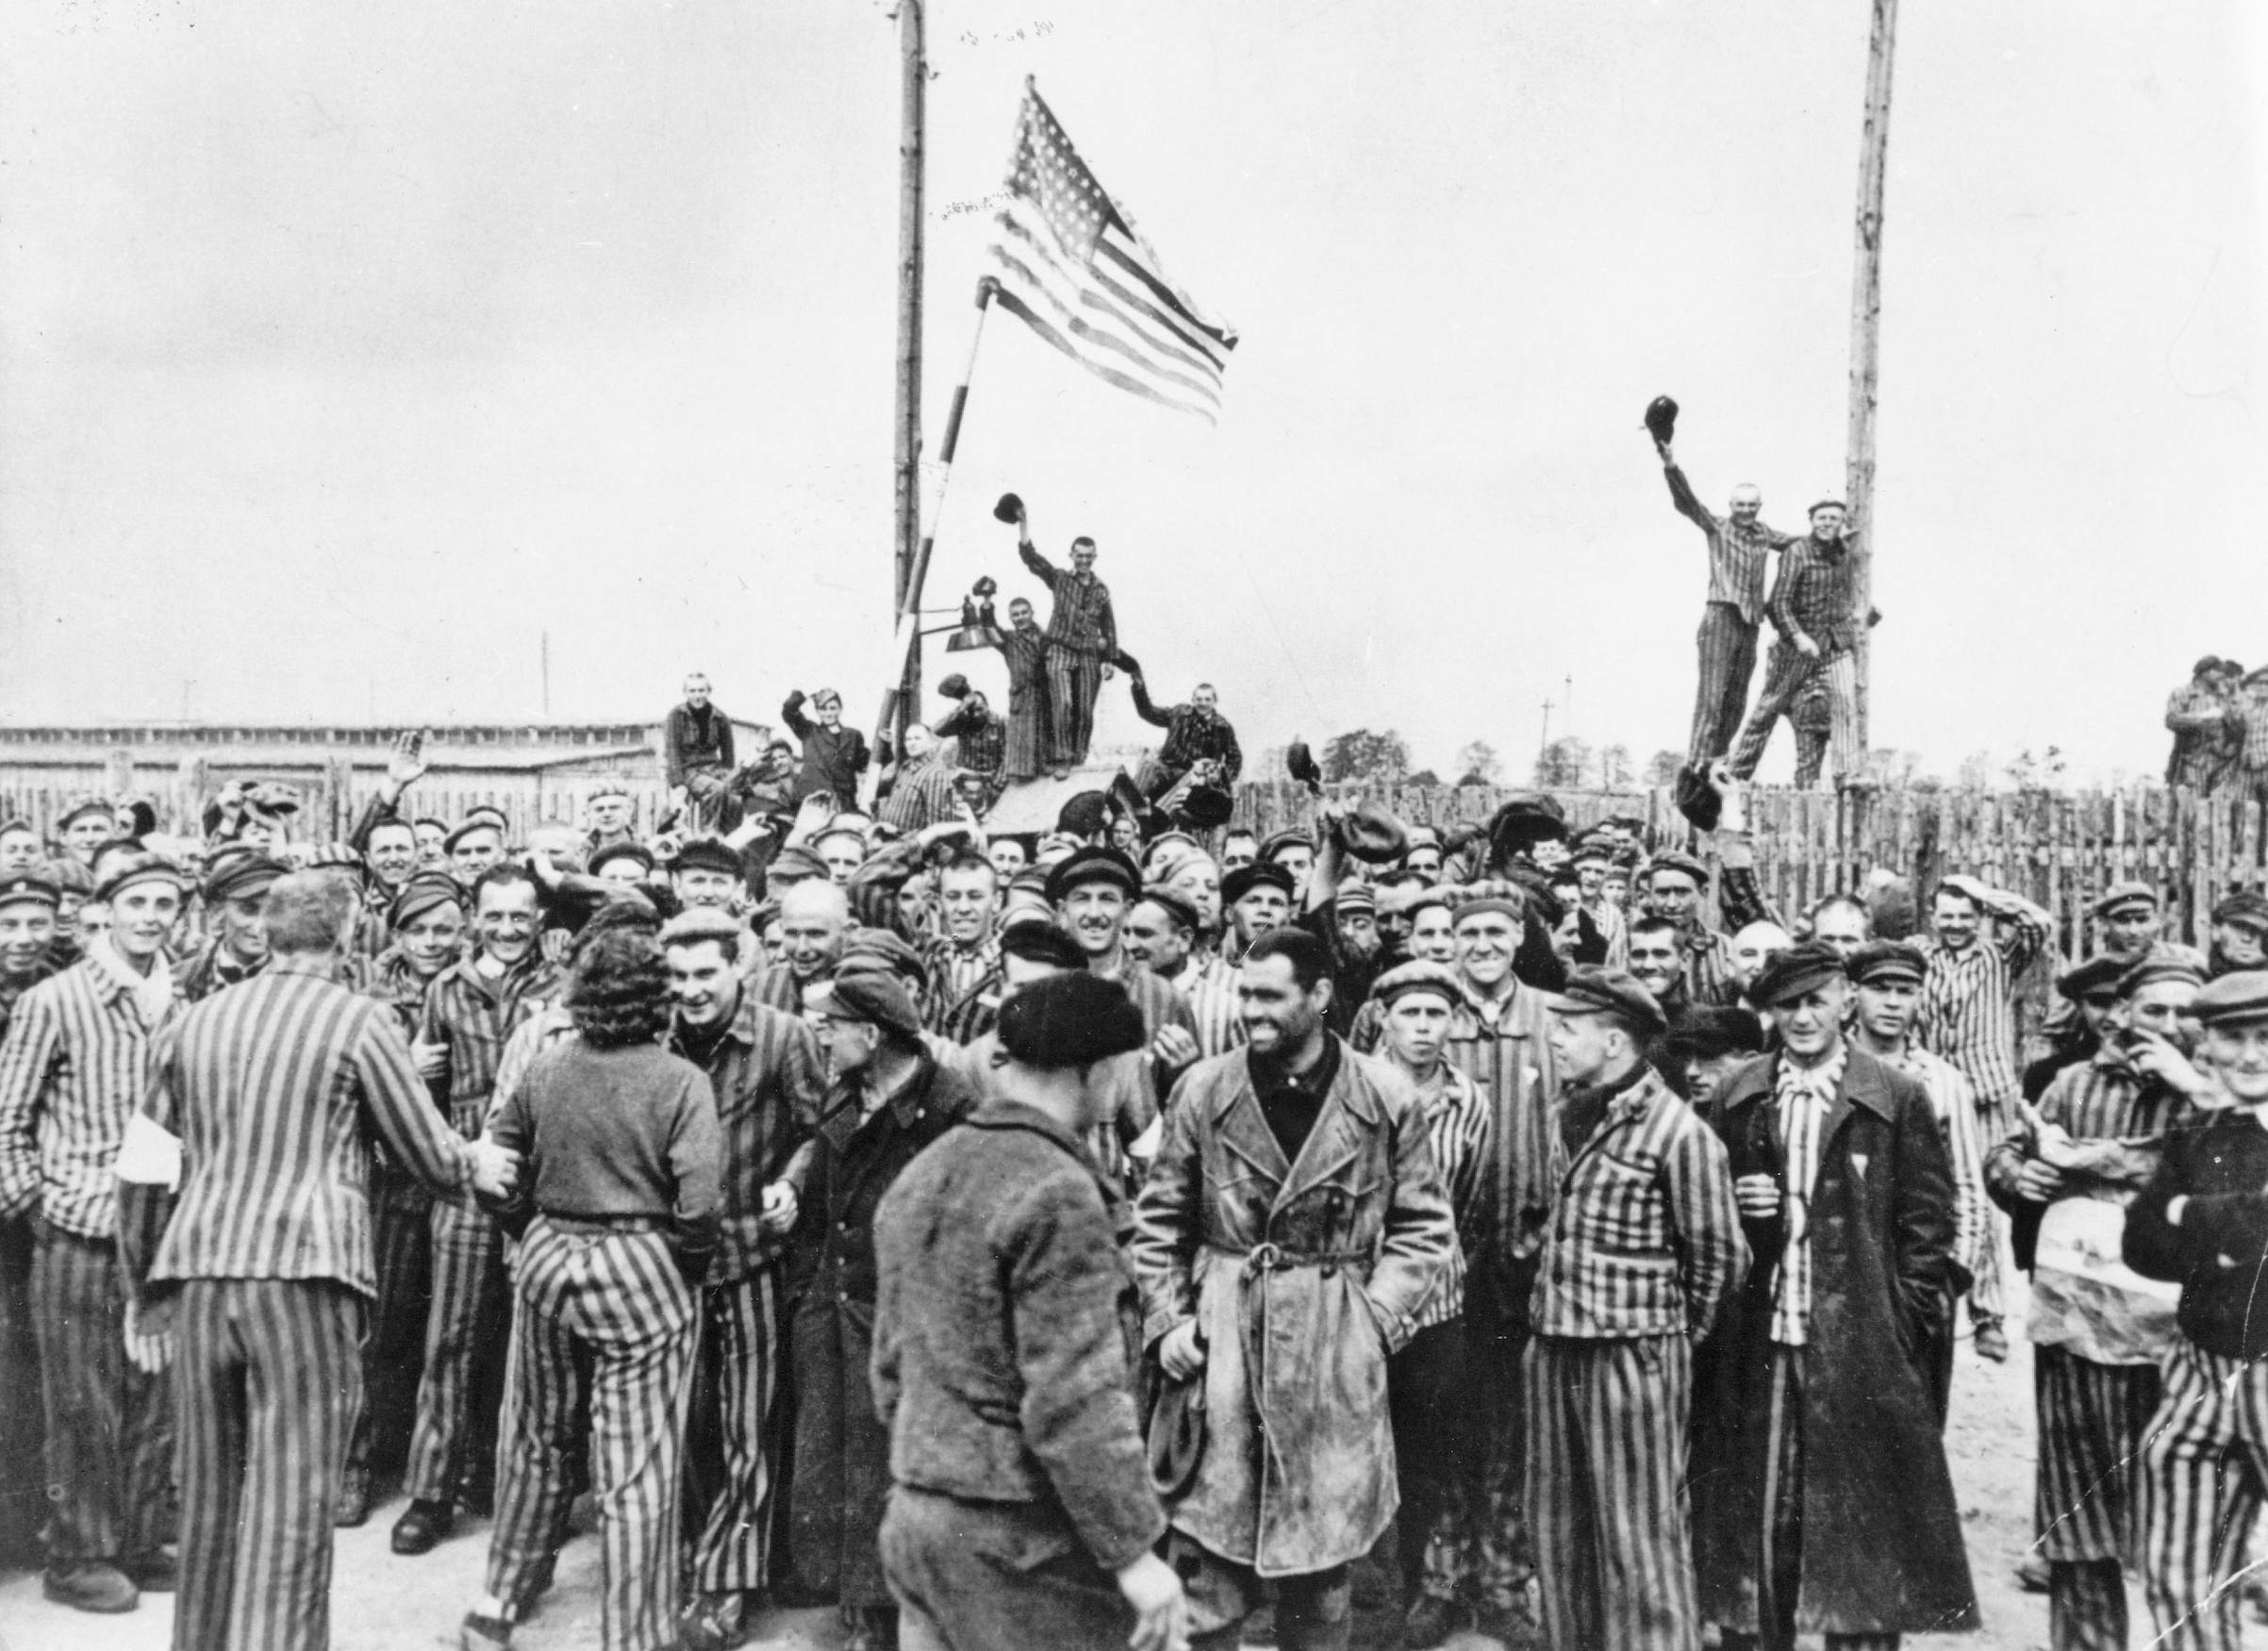 Detainees from Dachau concentration camp gathering on the former place of roll call after the liberation by American soldiers in 1945